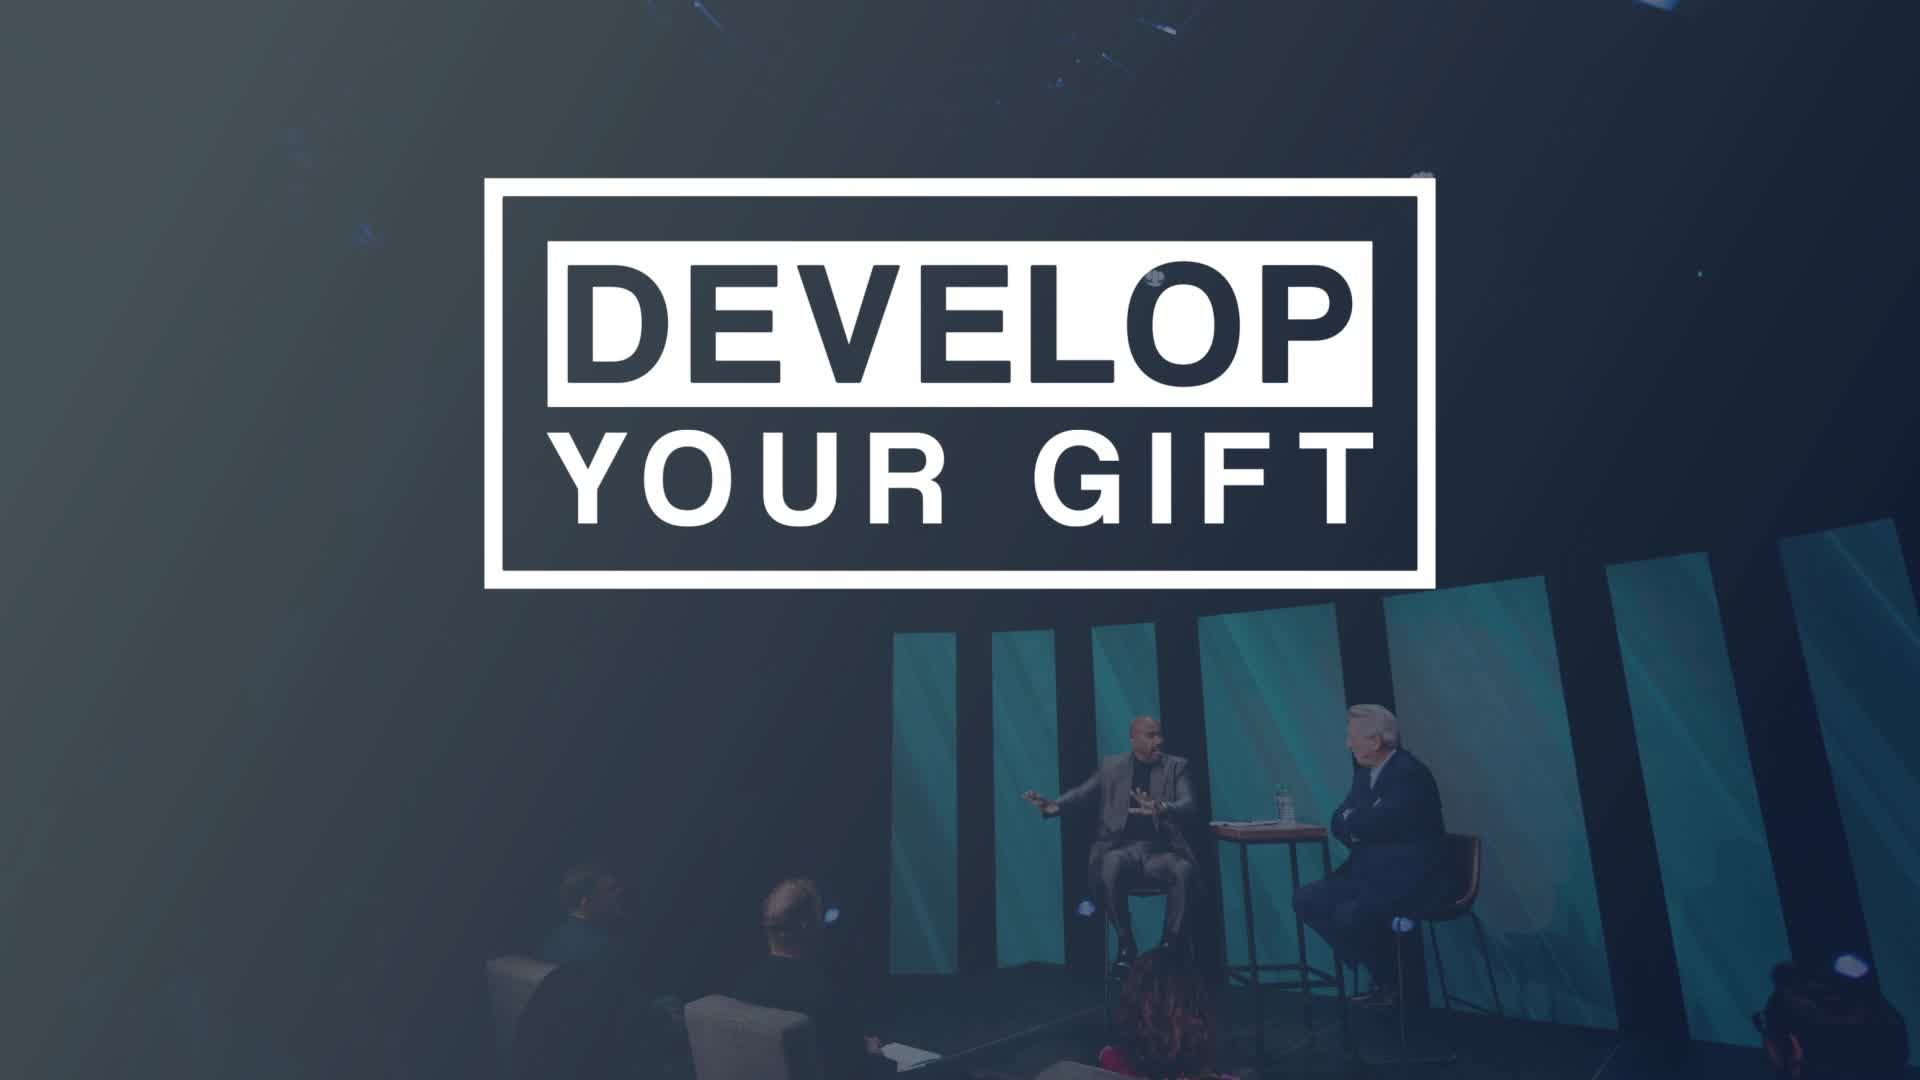 Develop Your Gift